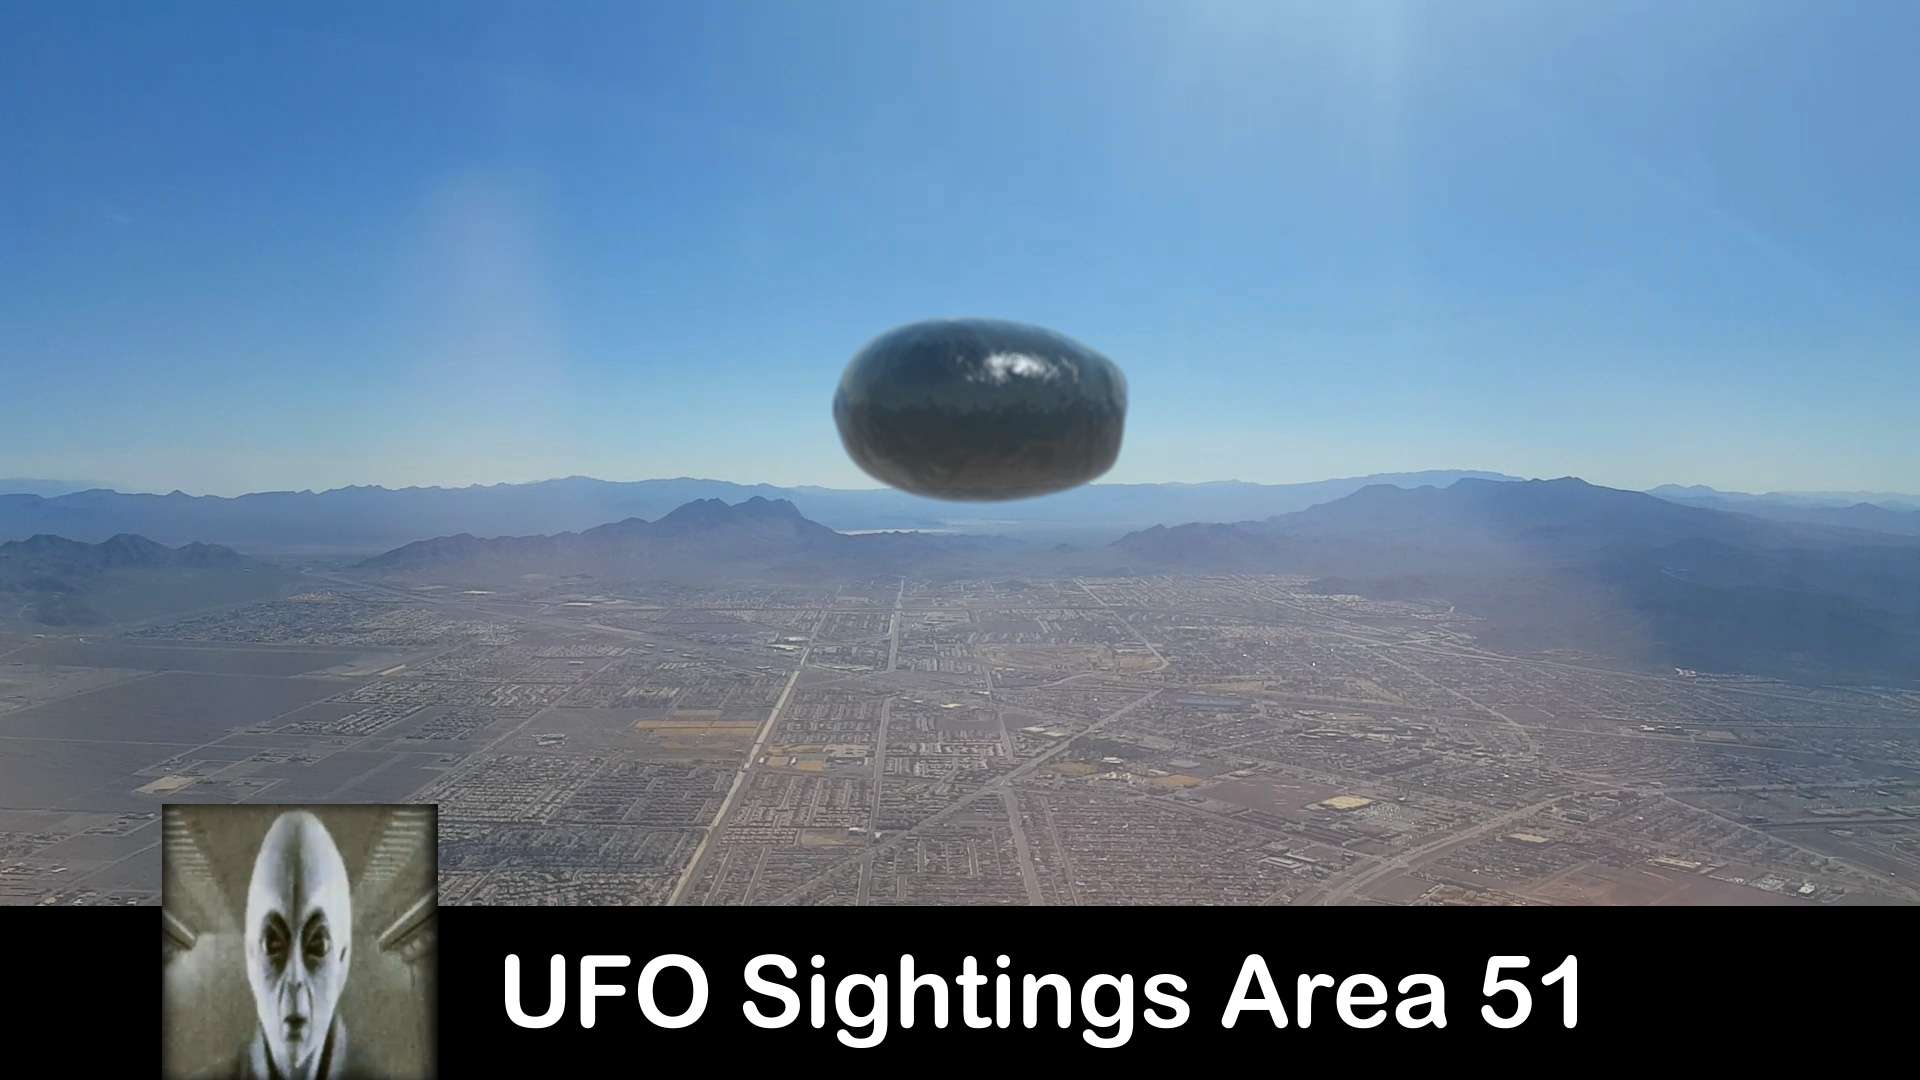 UFO Sightings Area 51 August 3rd 2017 | iufosightings